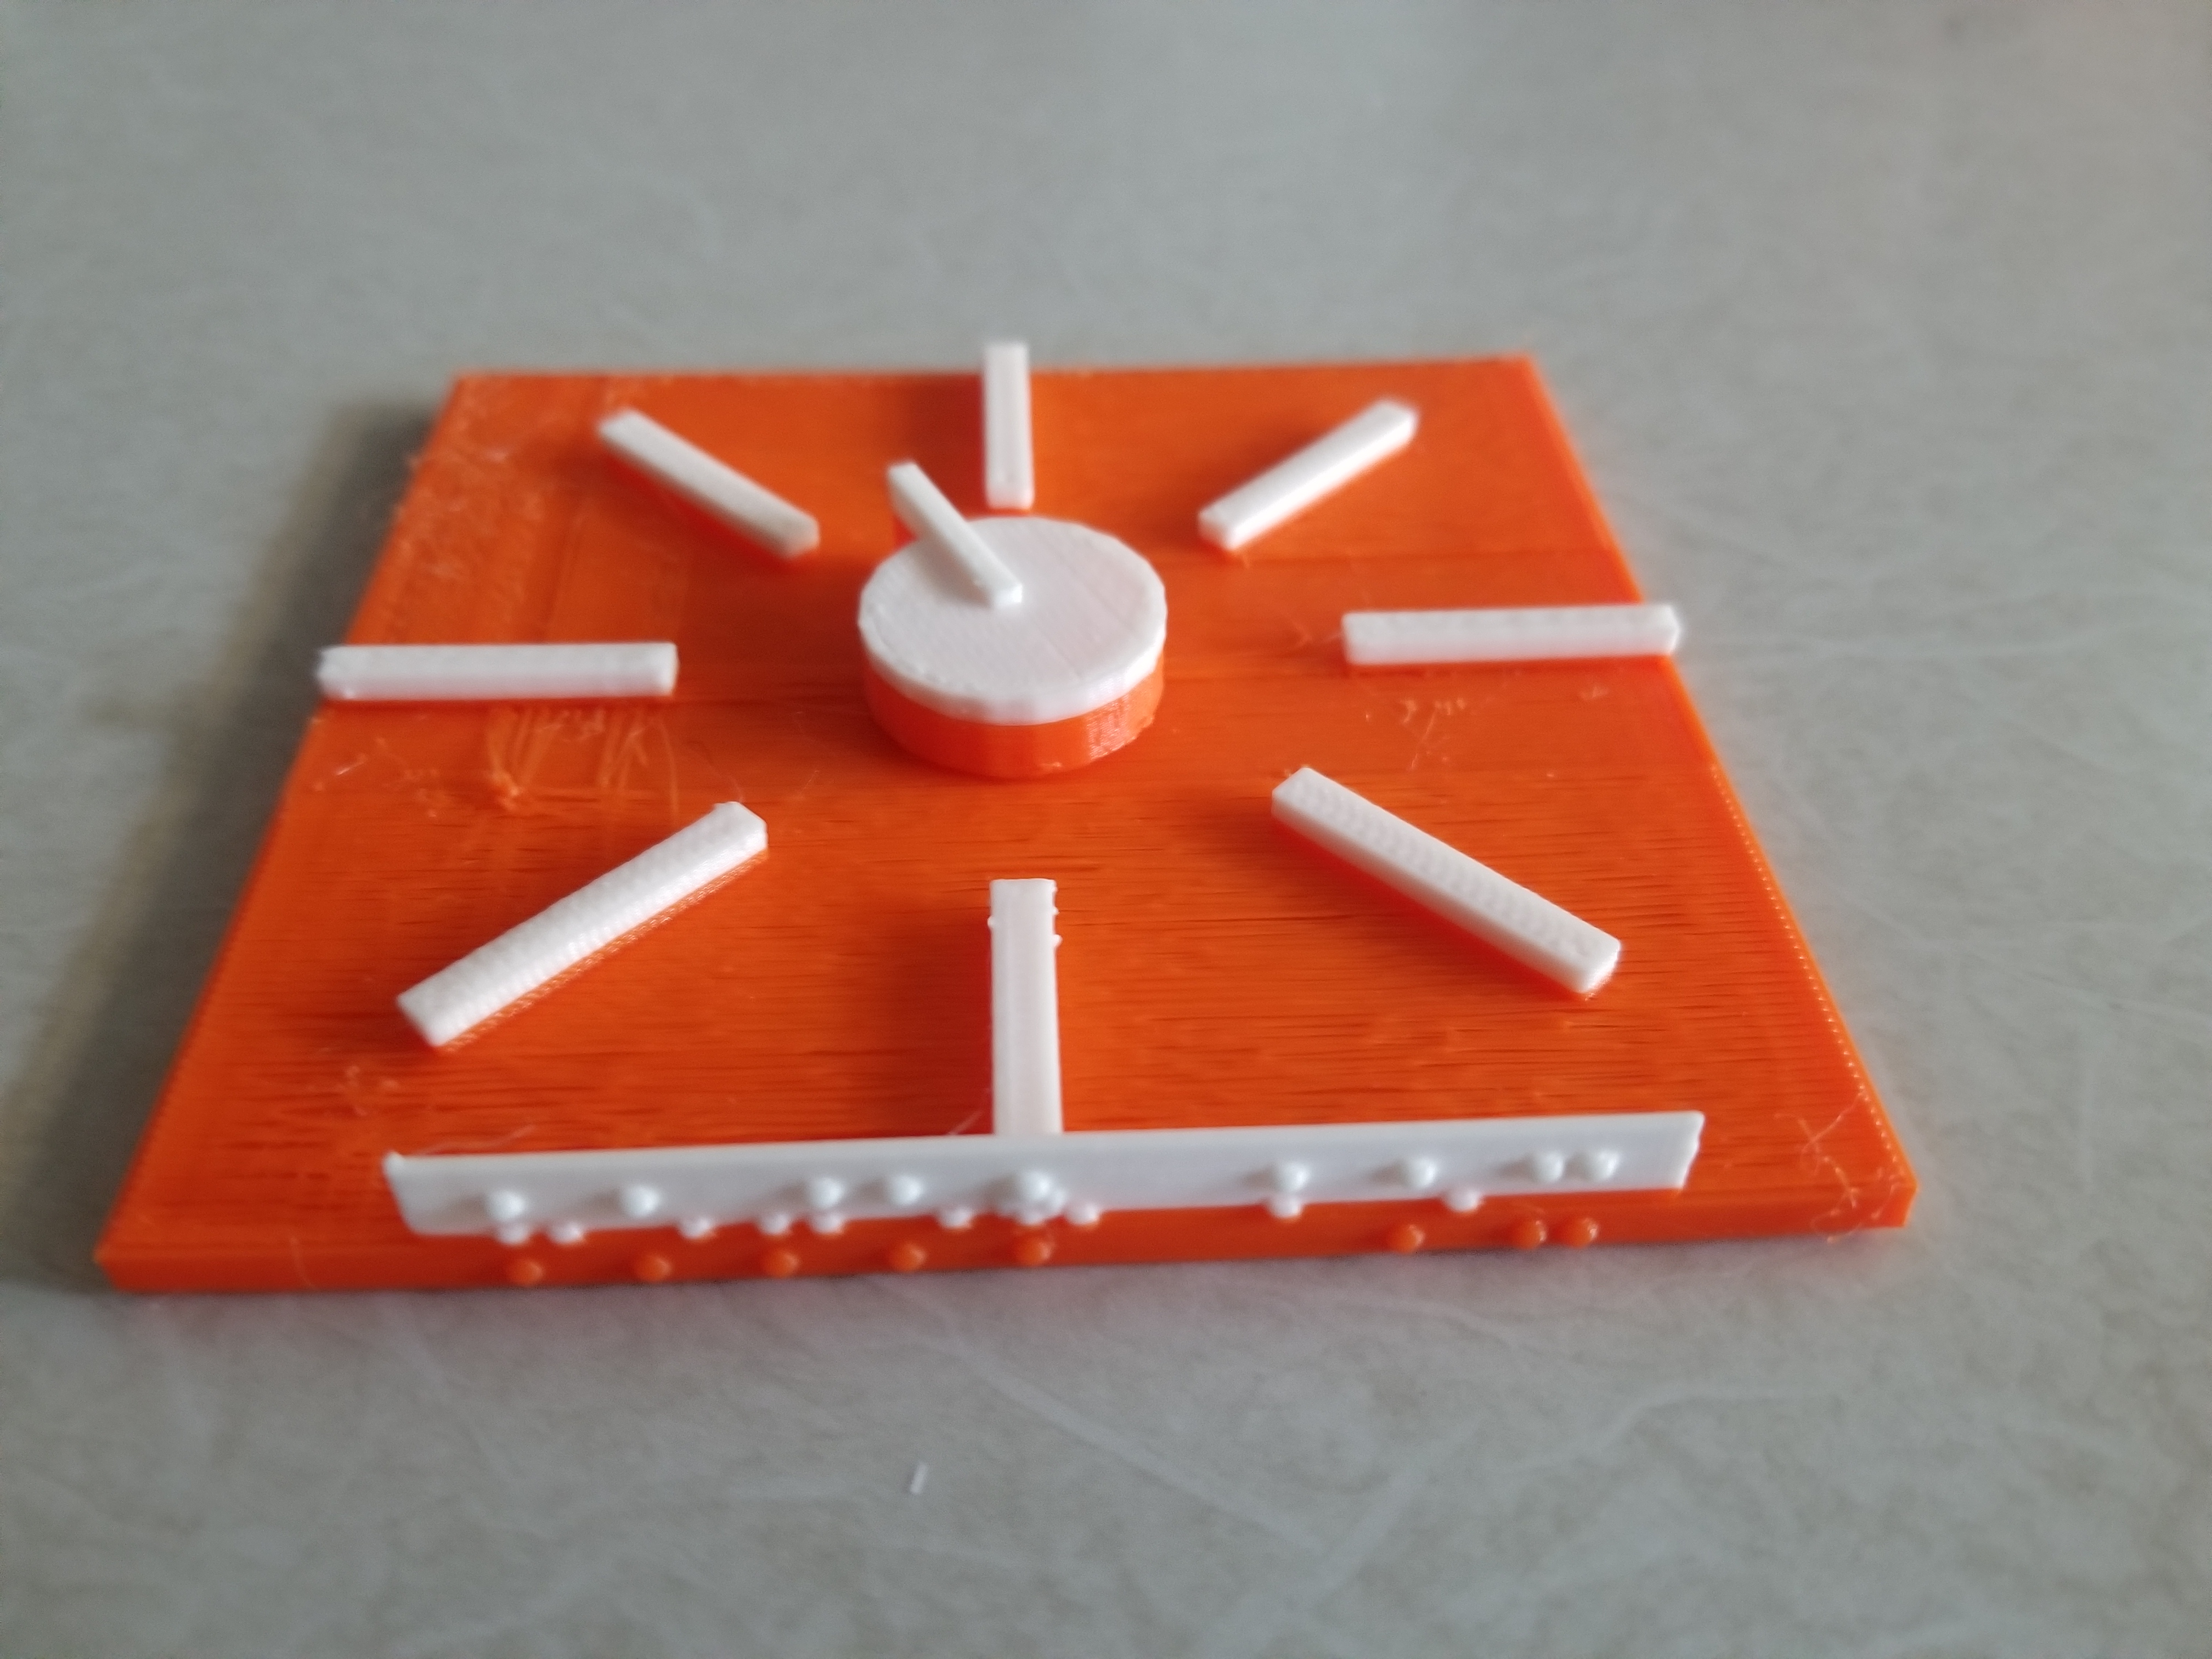 Photo: top view of 3D printed rotor box with orange base and white spinnable dial